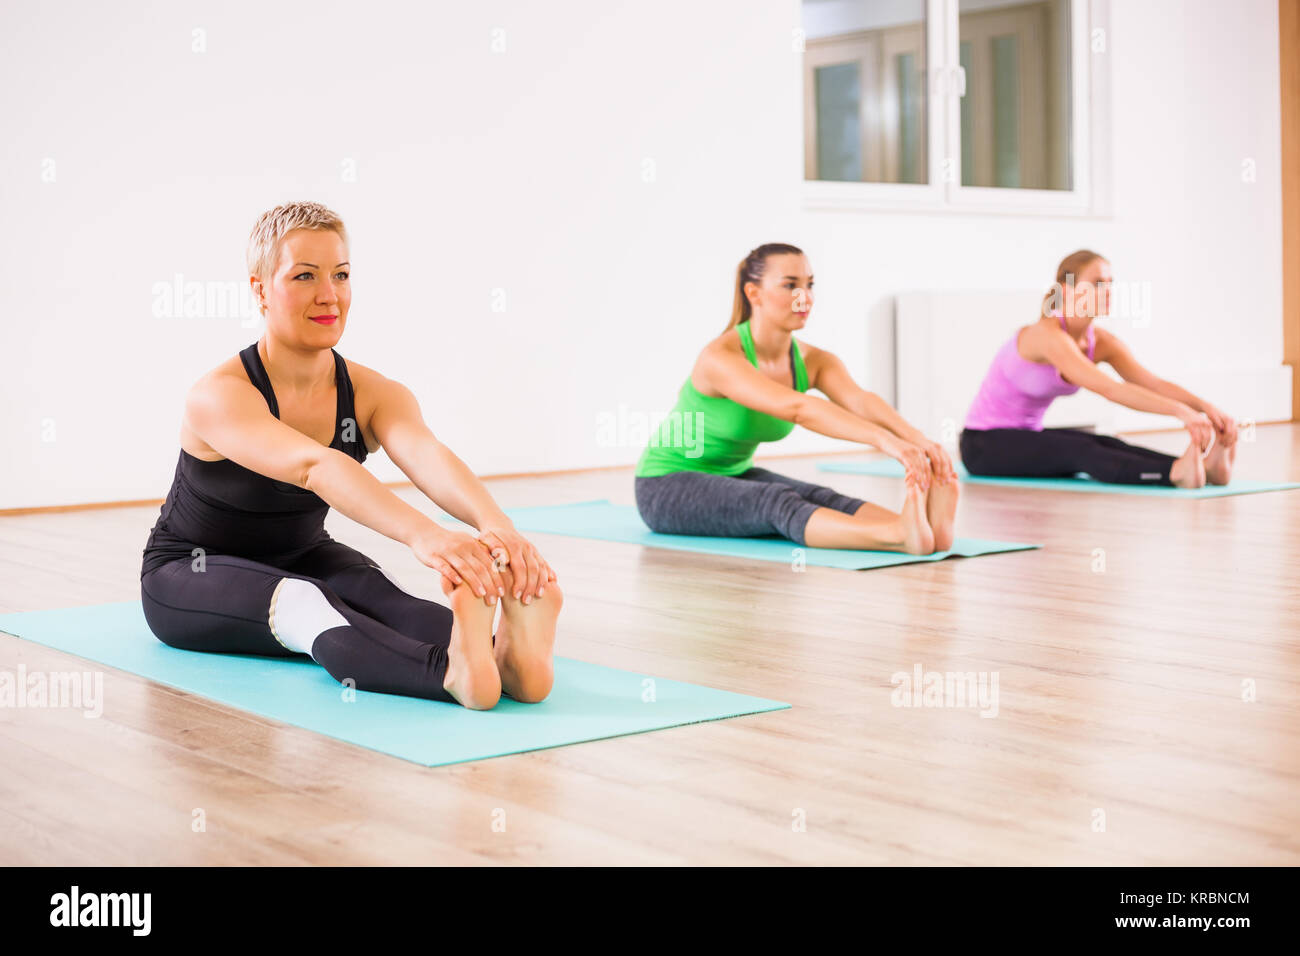 Three girls practicing yoga, Paschimottanasana / Seated Forward Bend pose - Stock Image